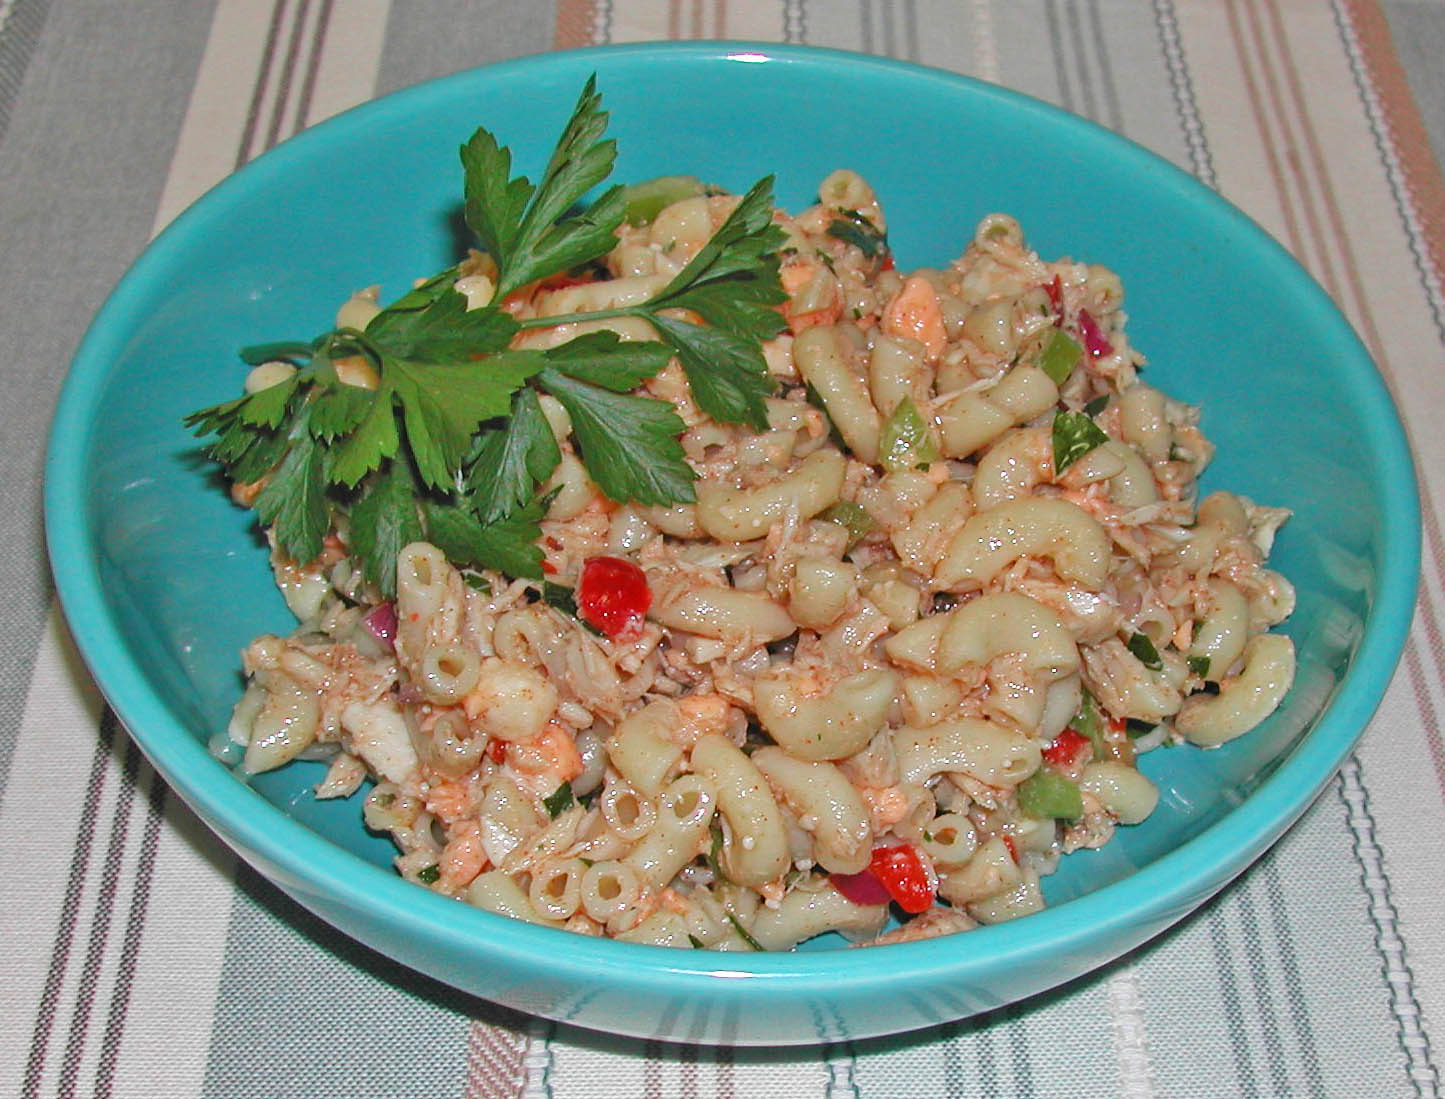 Tuna macaroni salad recipe dishmaps for Macaroni salad with tuna fish